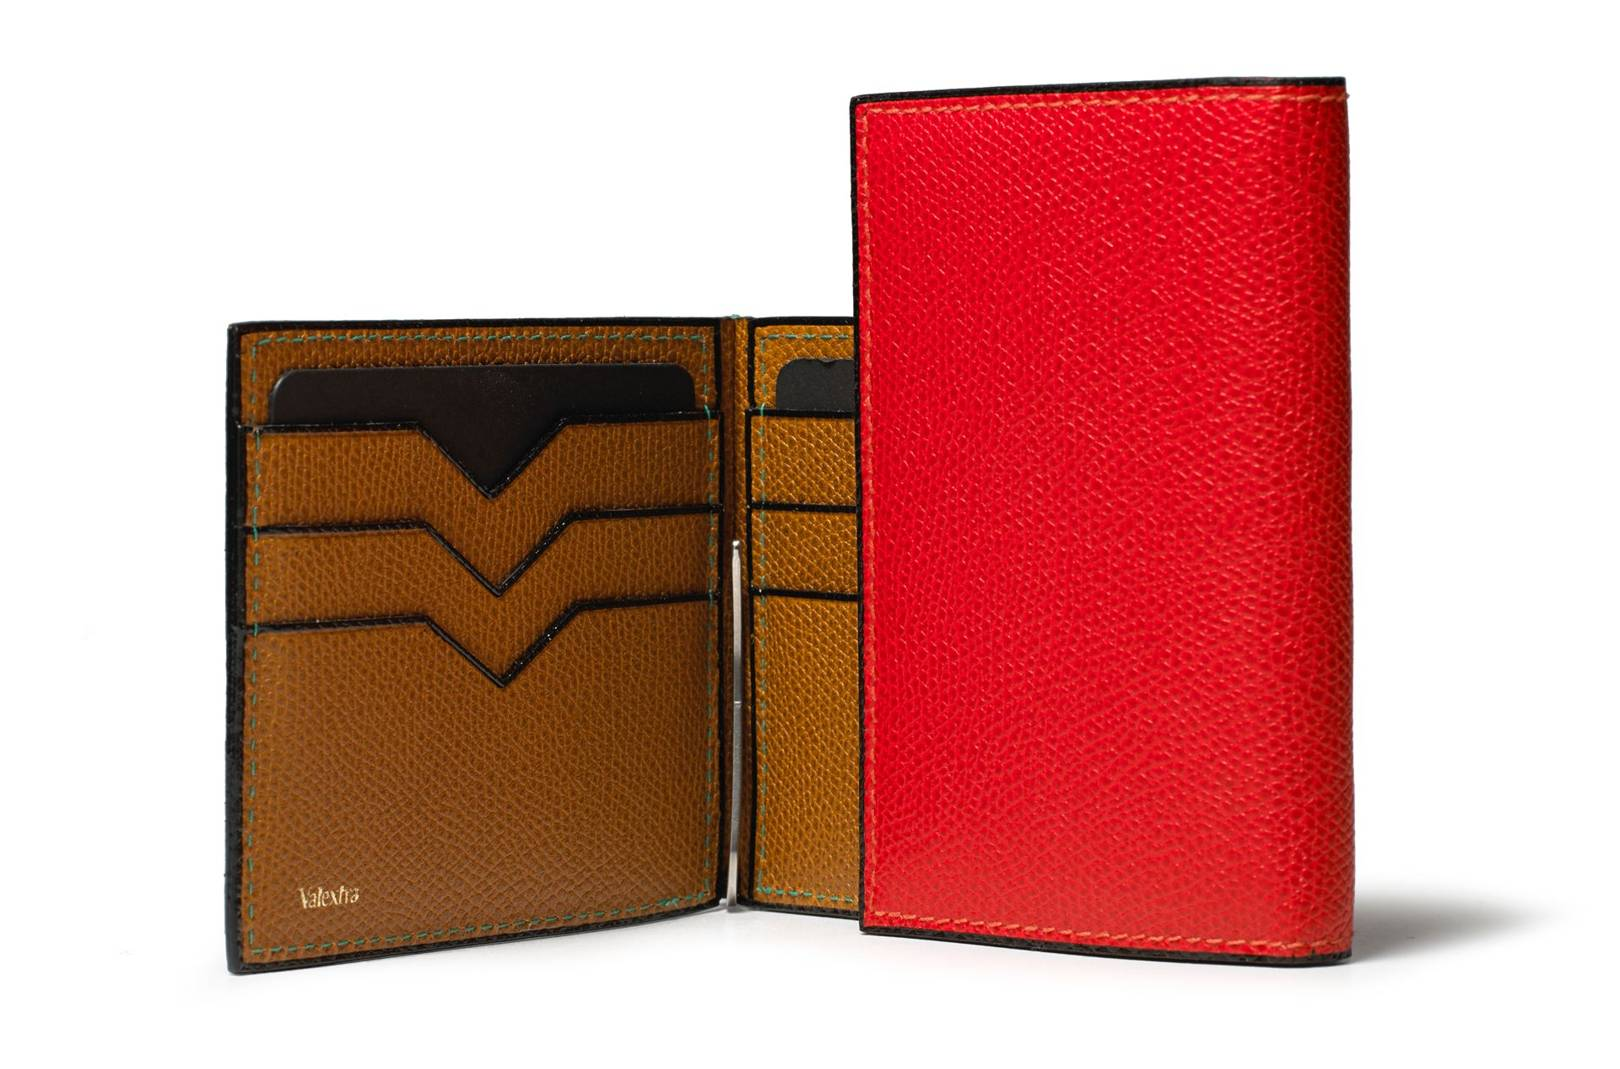 10 of the best wallets for men | British GQ